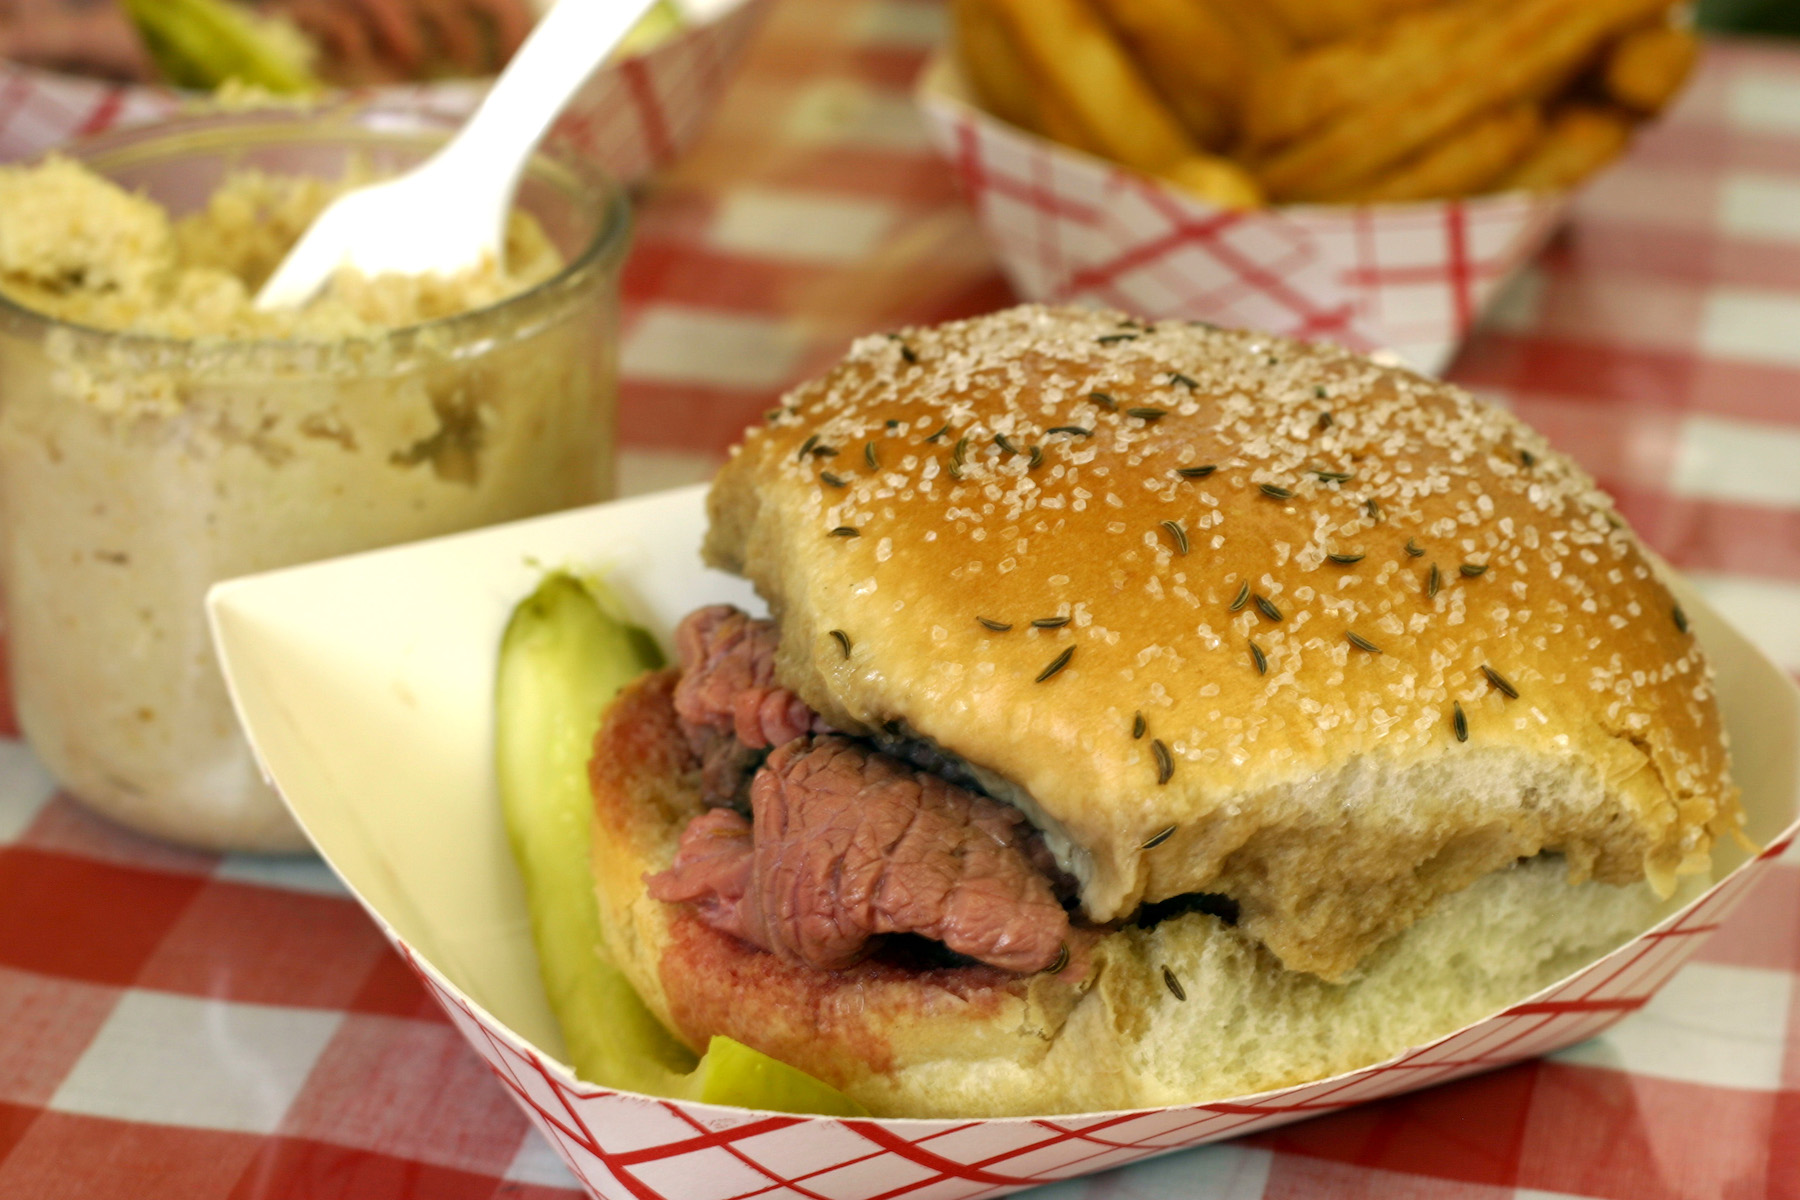 Buffalo is home to the world's best beef on weck. (Photo courtesy of Nickgray, used under Wikipedia Creative Commons)